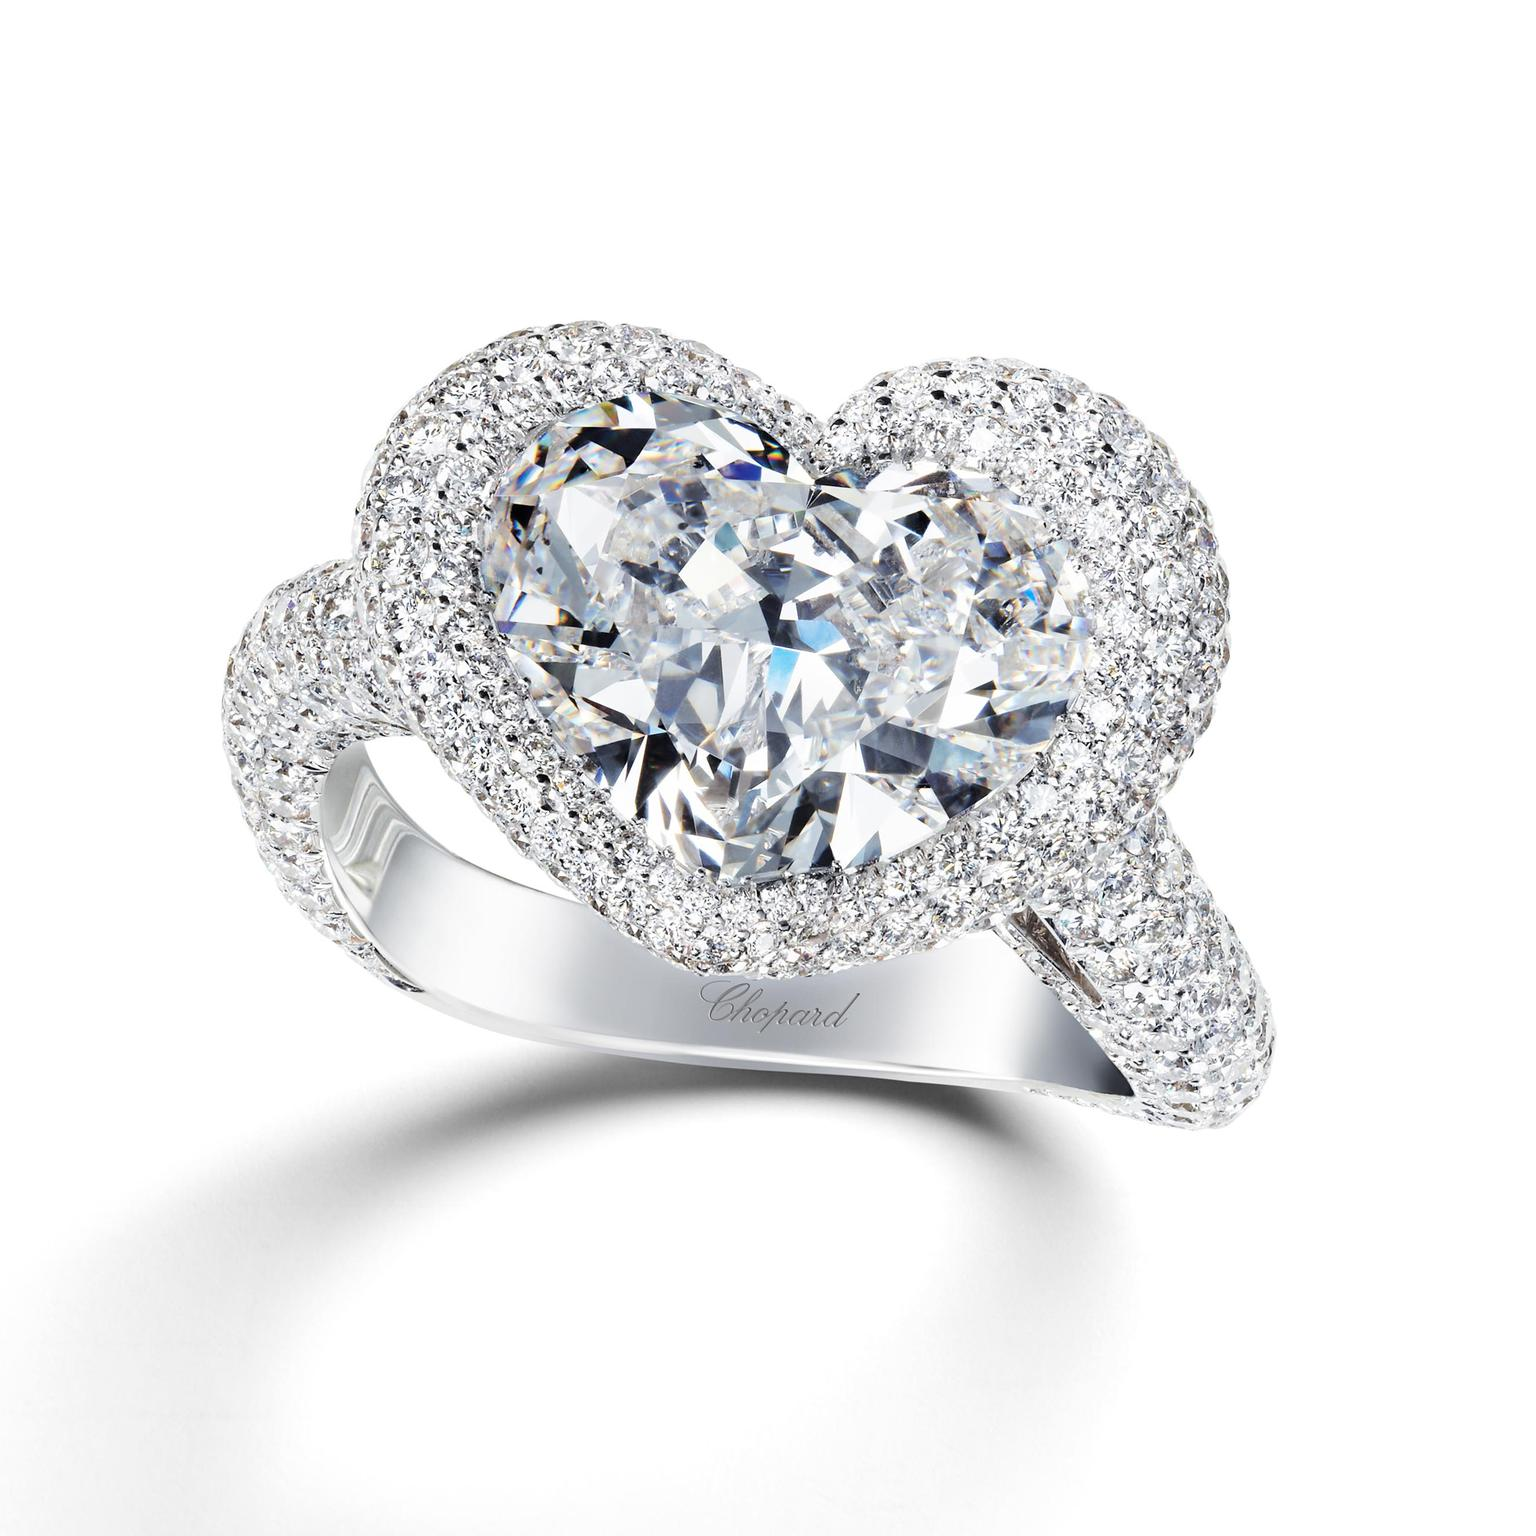 Chopard heart-shaped diamond engagement ring